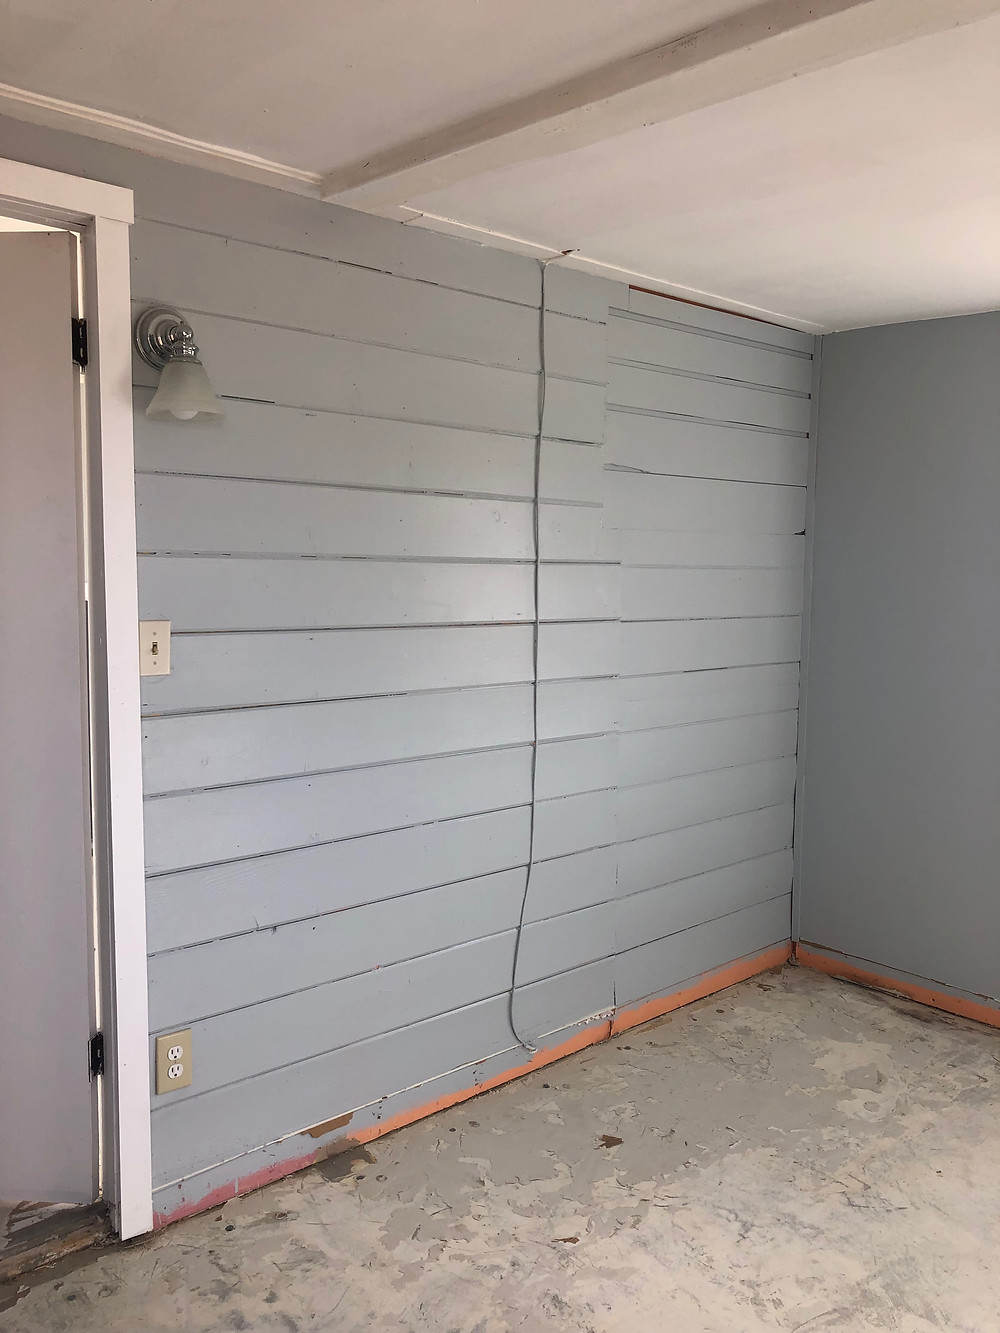 Bedroom before picture with exterior siding on wall